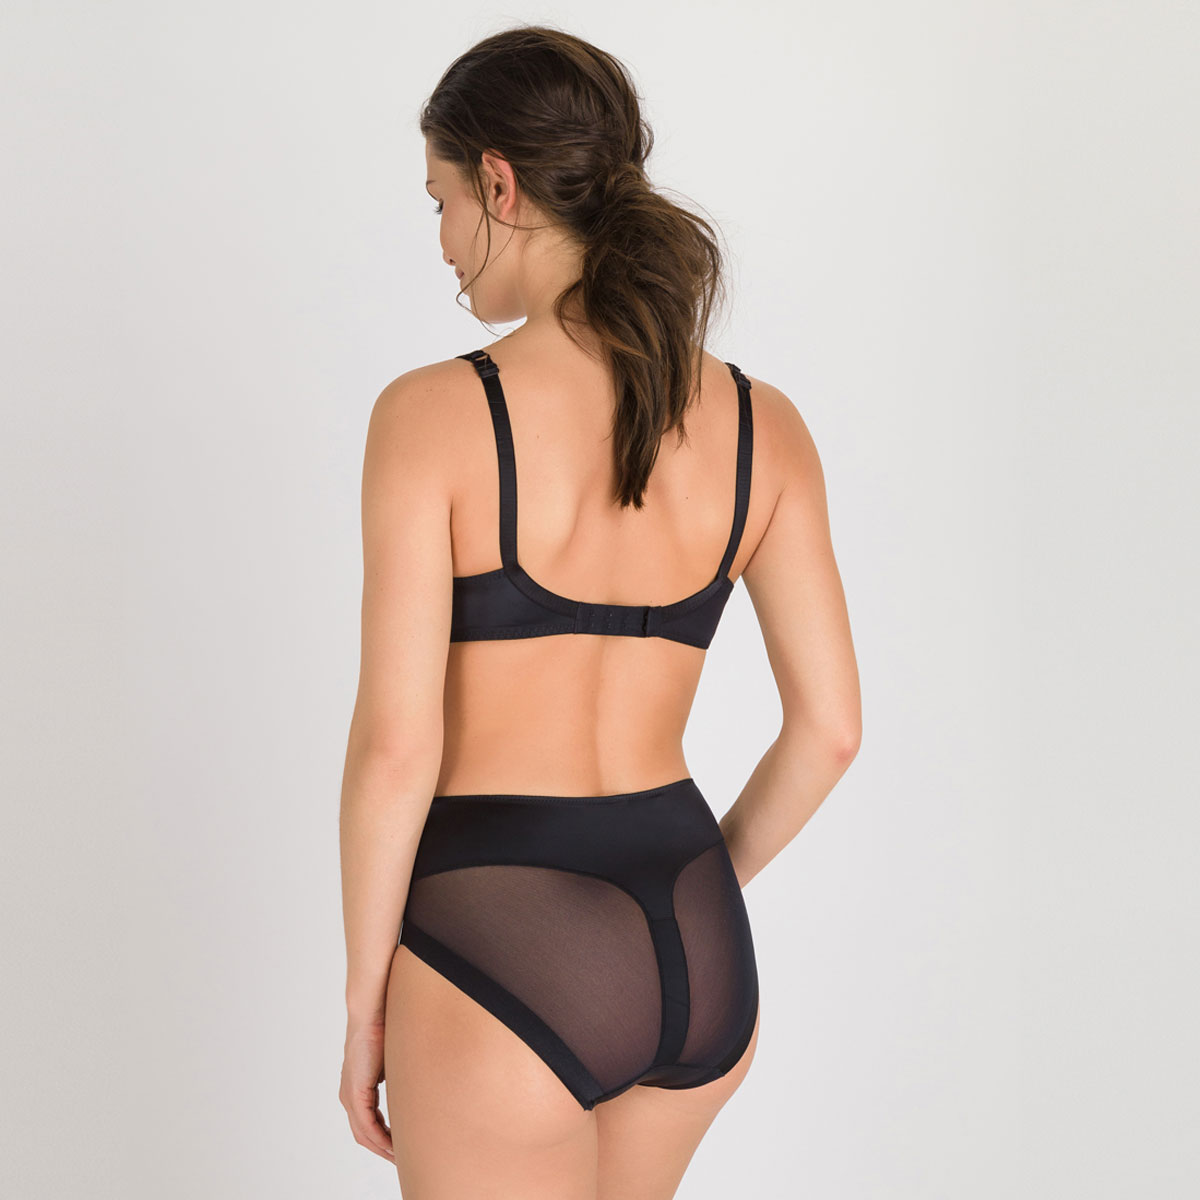 Invisible Shaping Maxi Brief in Black – Perfect Silhouette-PLAYTEX